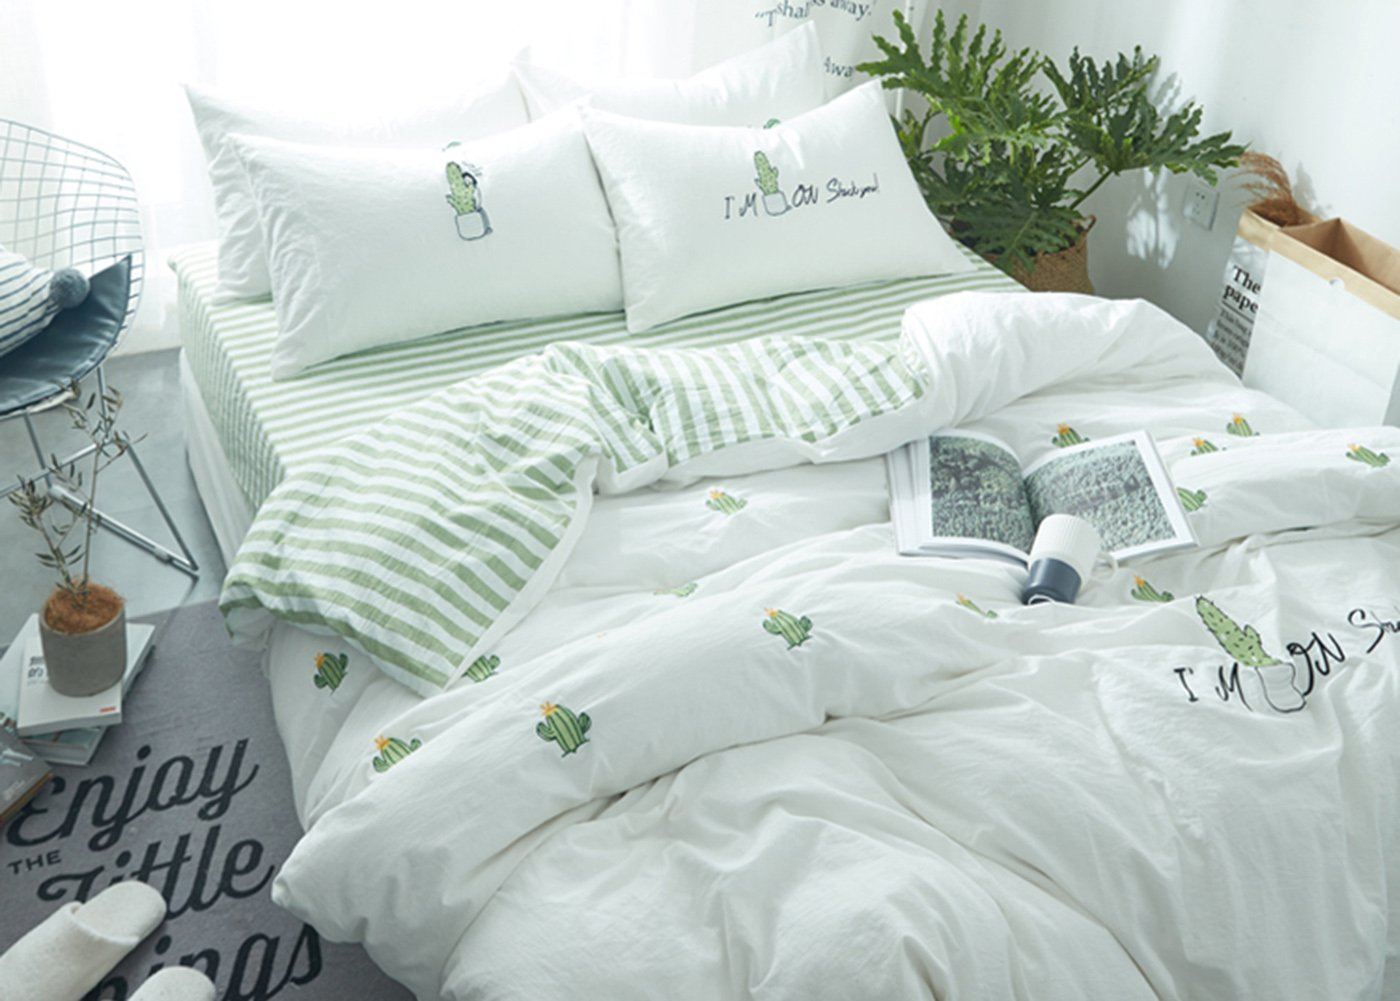 Cactus Embroidery Bedding Sets - MeMoreCool 100% Cotton AB Version Green Style Girls Gifts Duvet Cover and Fitted Sheet 3PC Twin